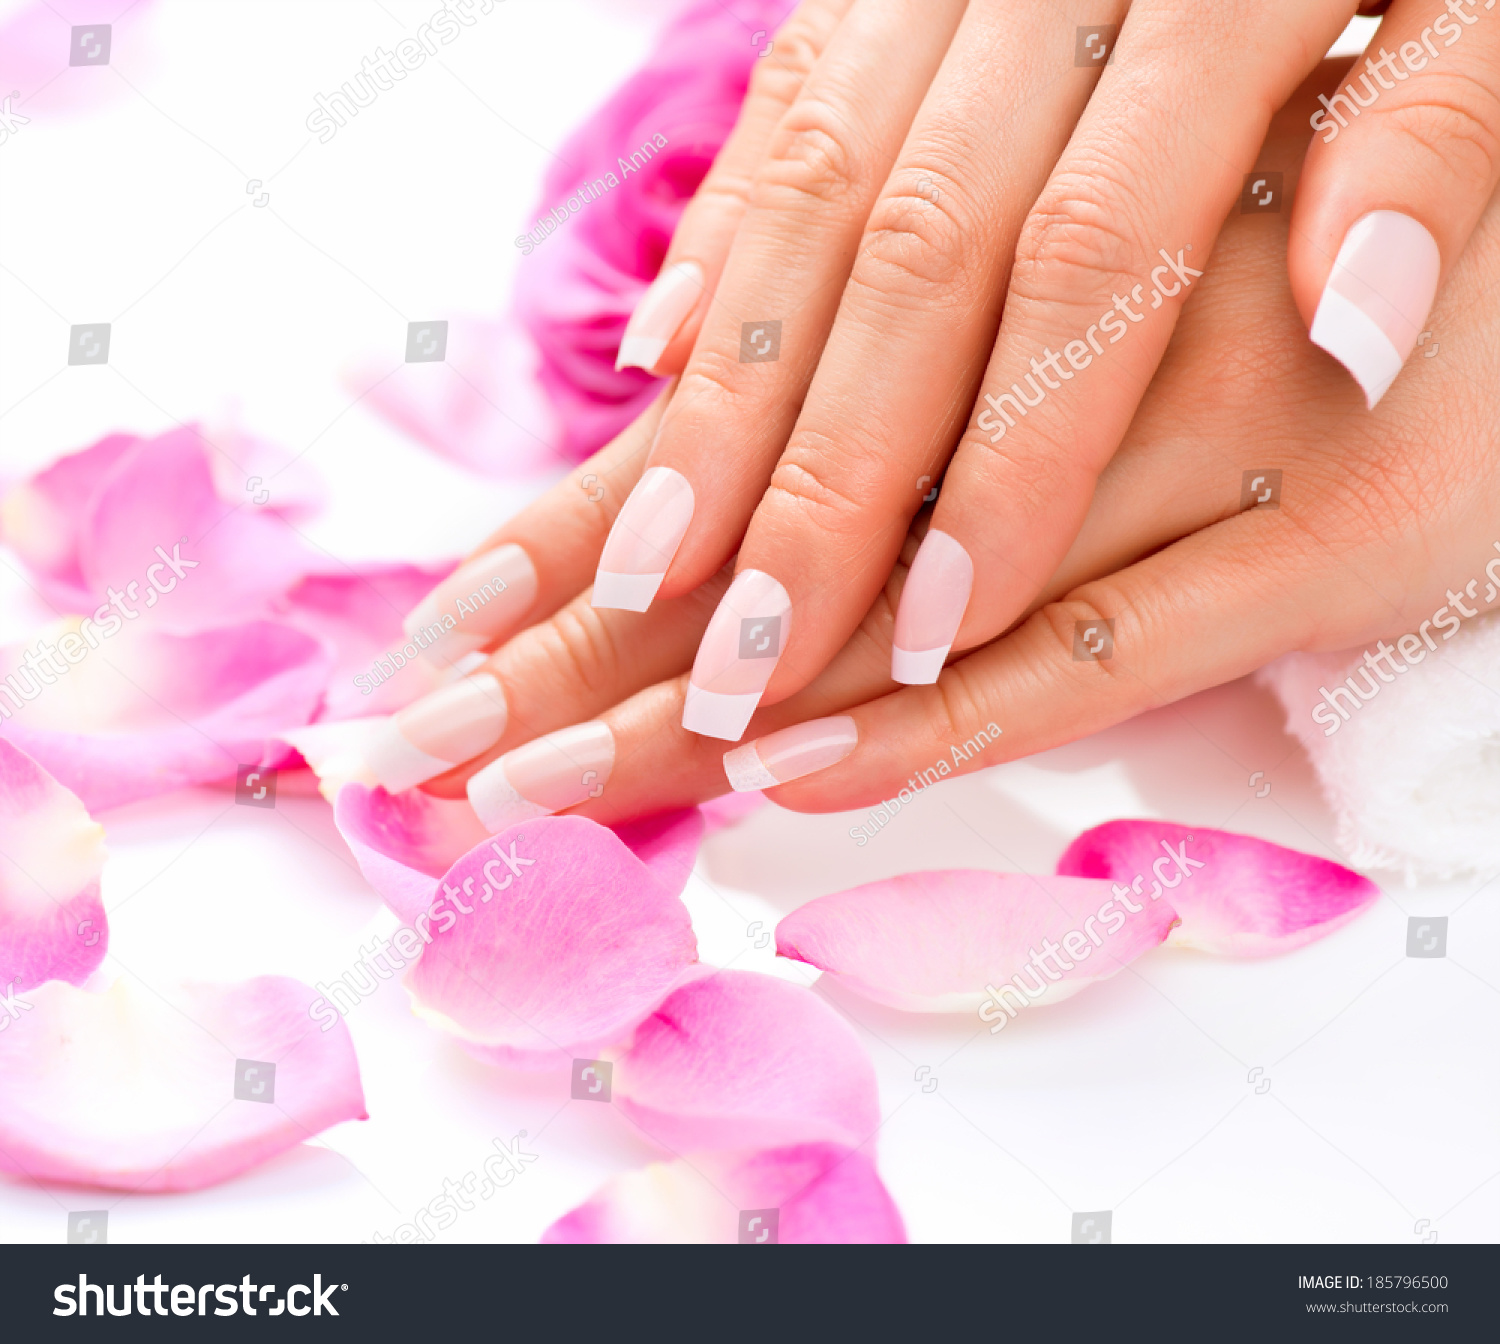 Manicure Hands Spa Beautiful Woman Hands Stock Photo (100% Legal ...